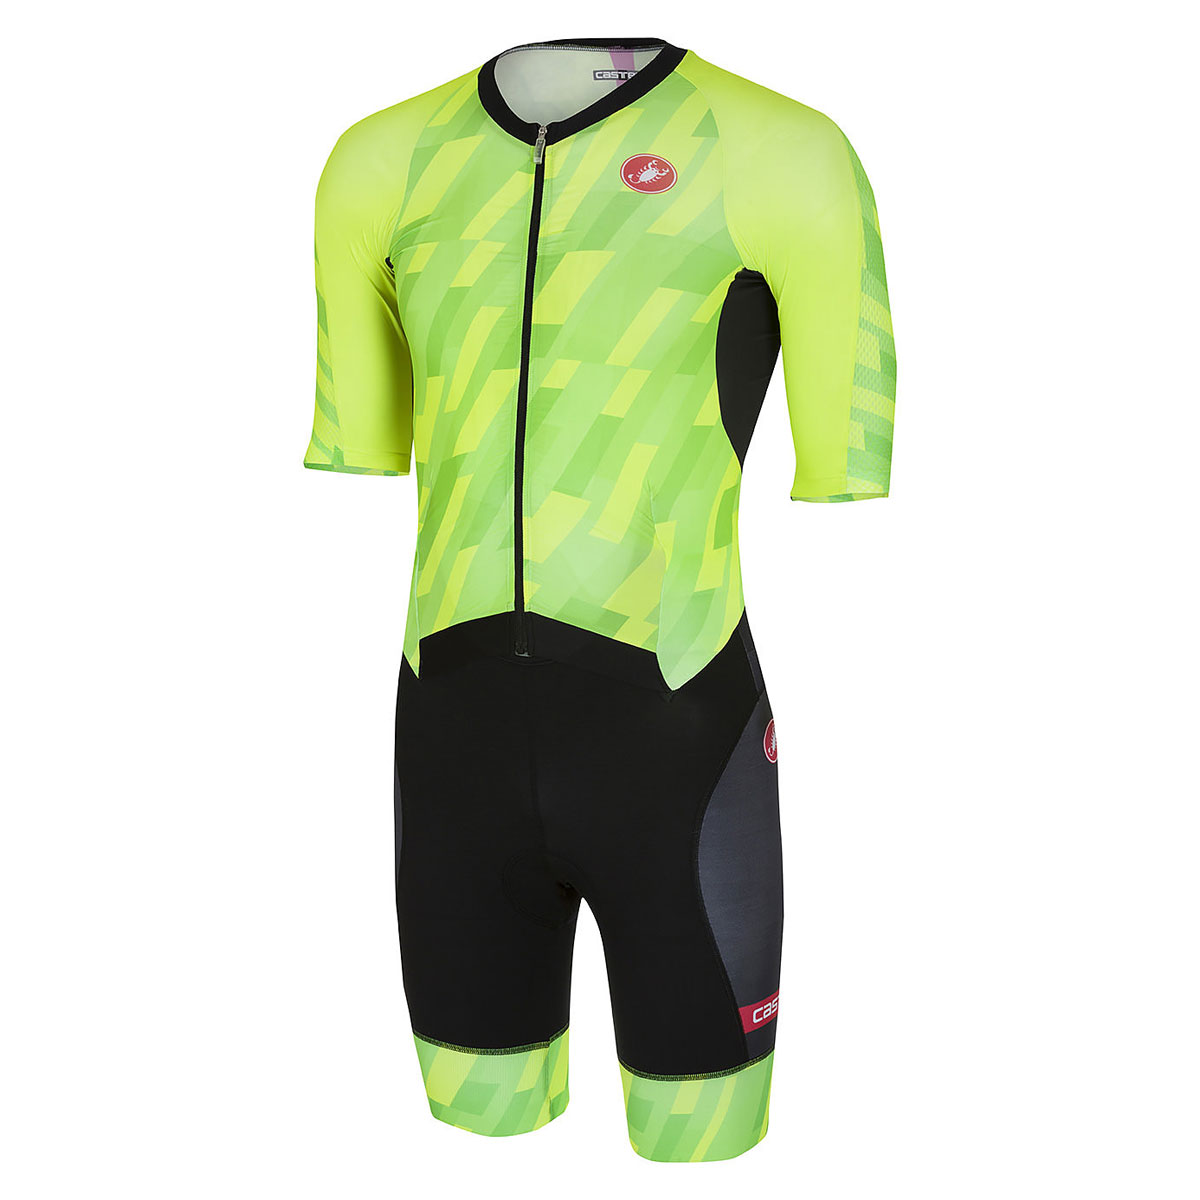 TRI-SUIT CASTELLI ALL OUT SPEED